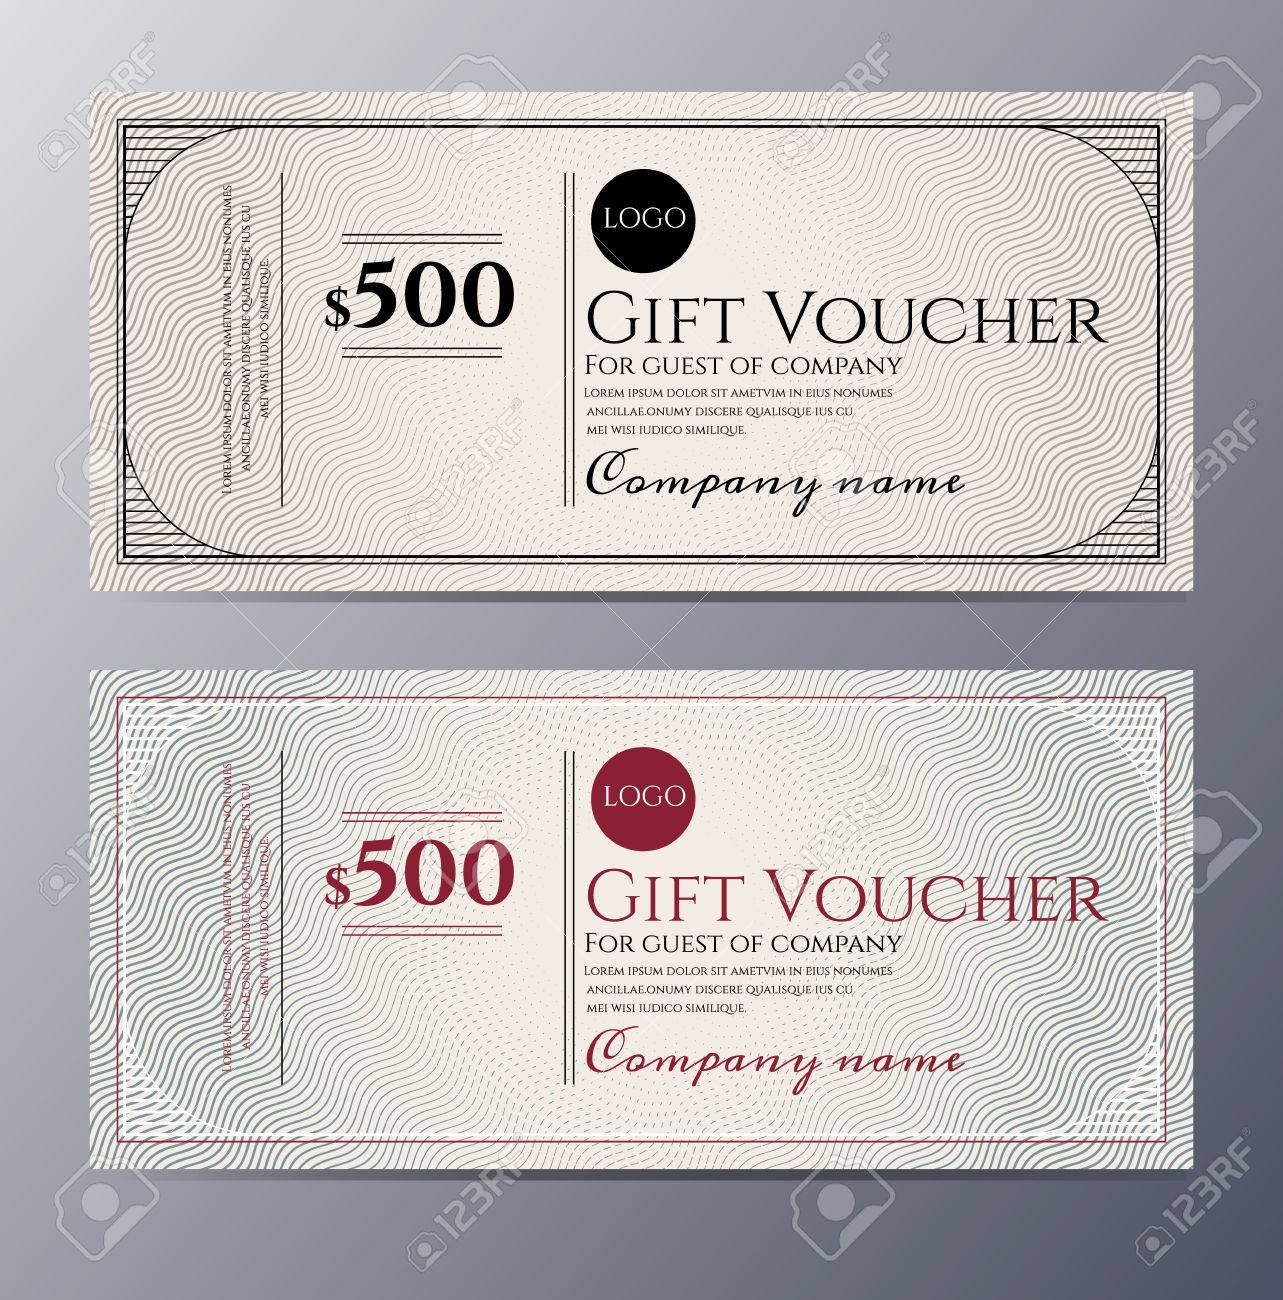 gift voucher template colorful pattern classic premium gift voucher template colorful pattern classic premium style stock vector 48106533